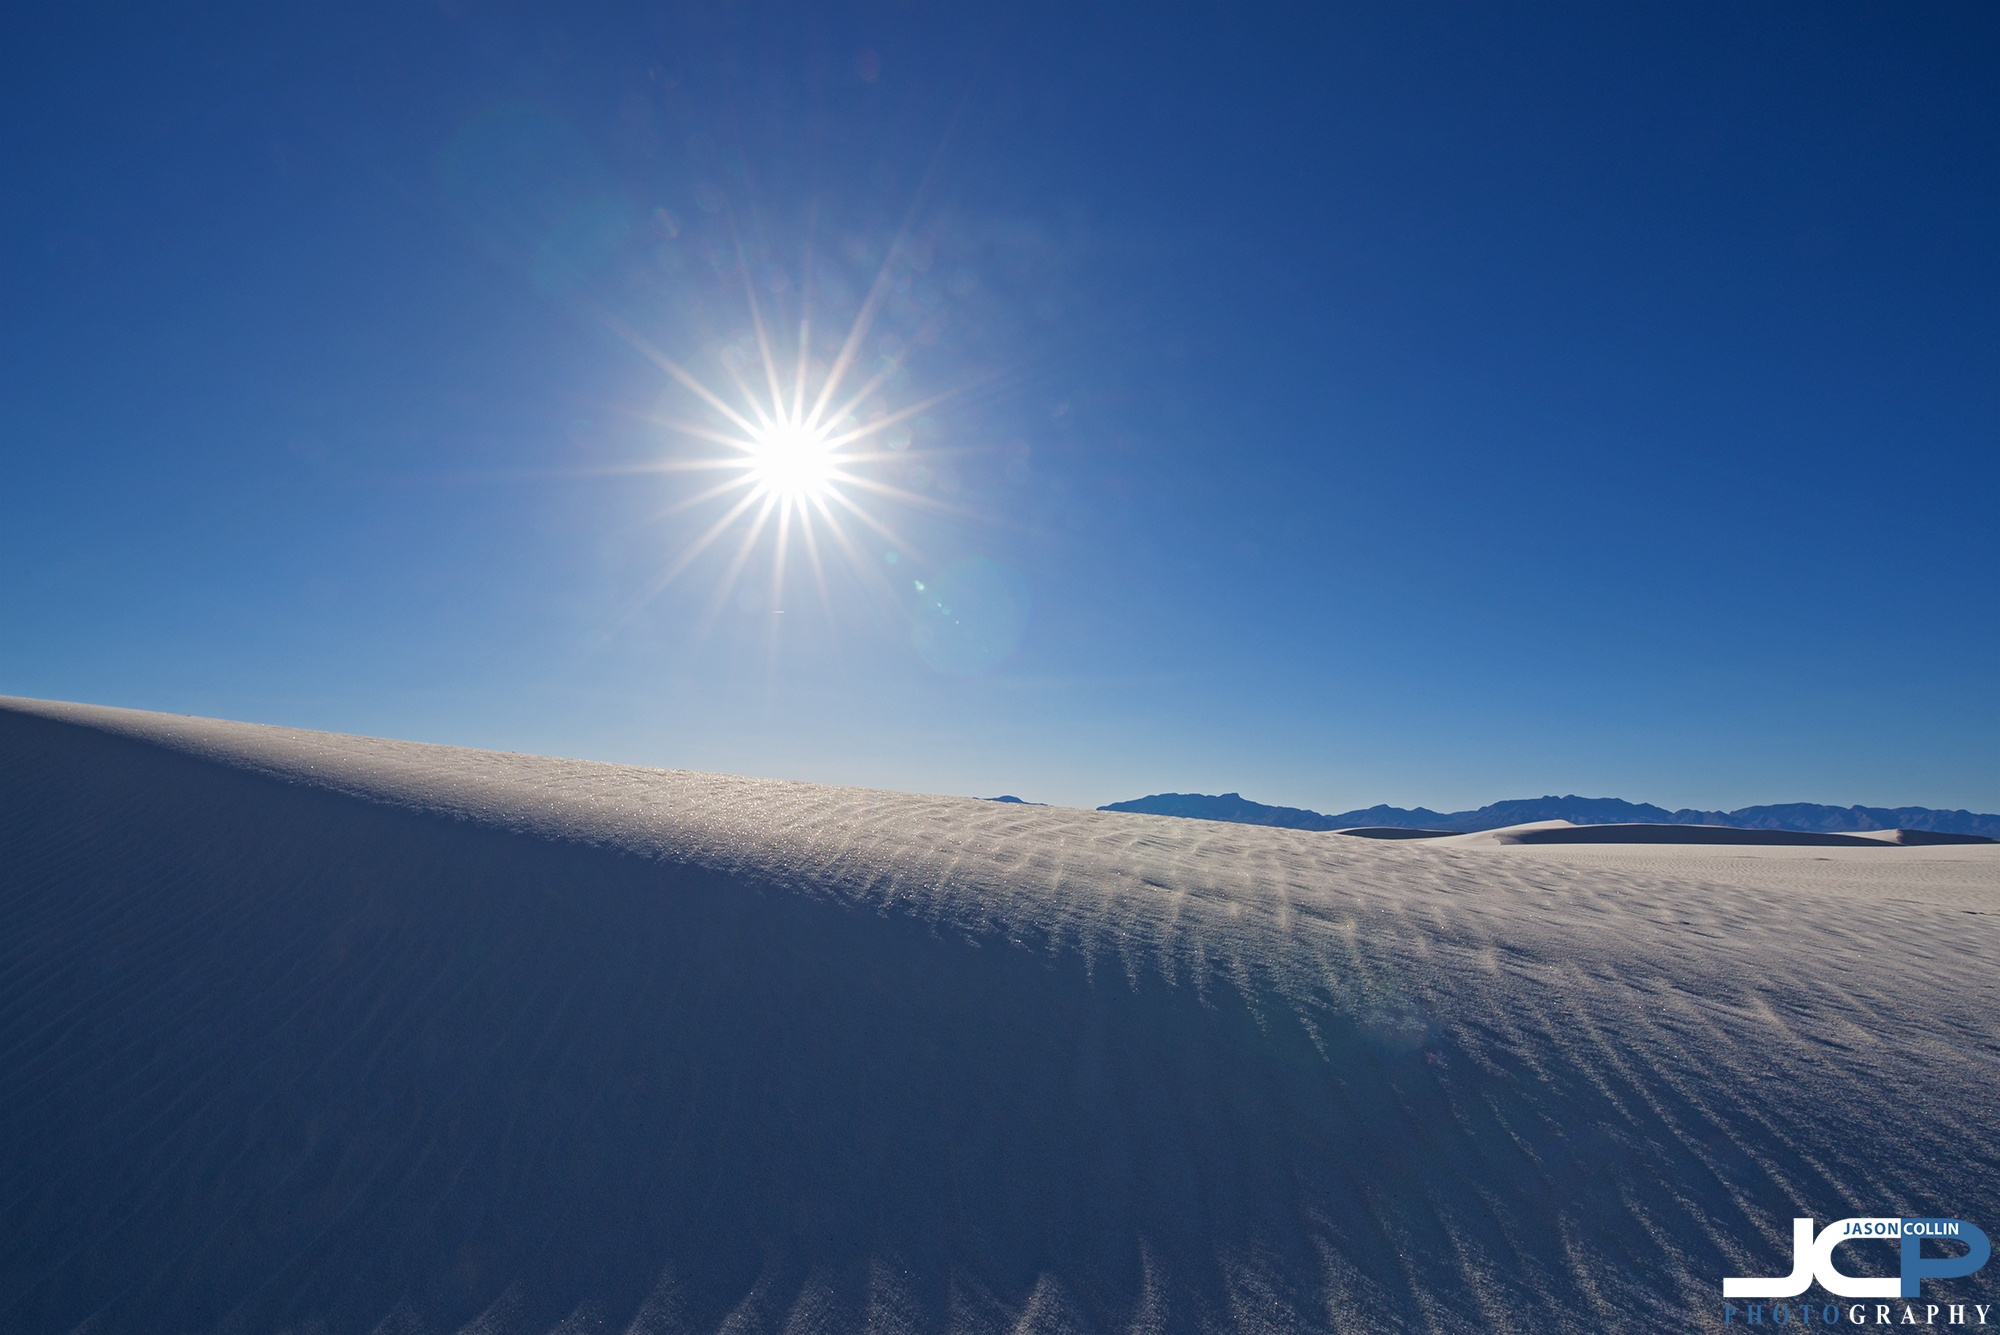 50% white, 50% blue, that is the view White Sands offers - Nikon D750 with Tamron 15-30mm @ f/16 1/160th ISO 100 15mm